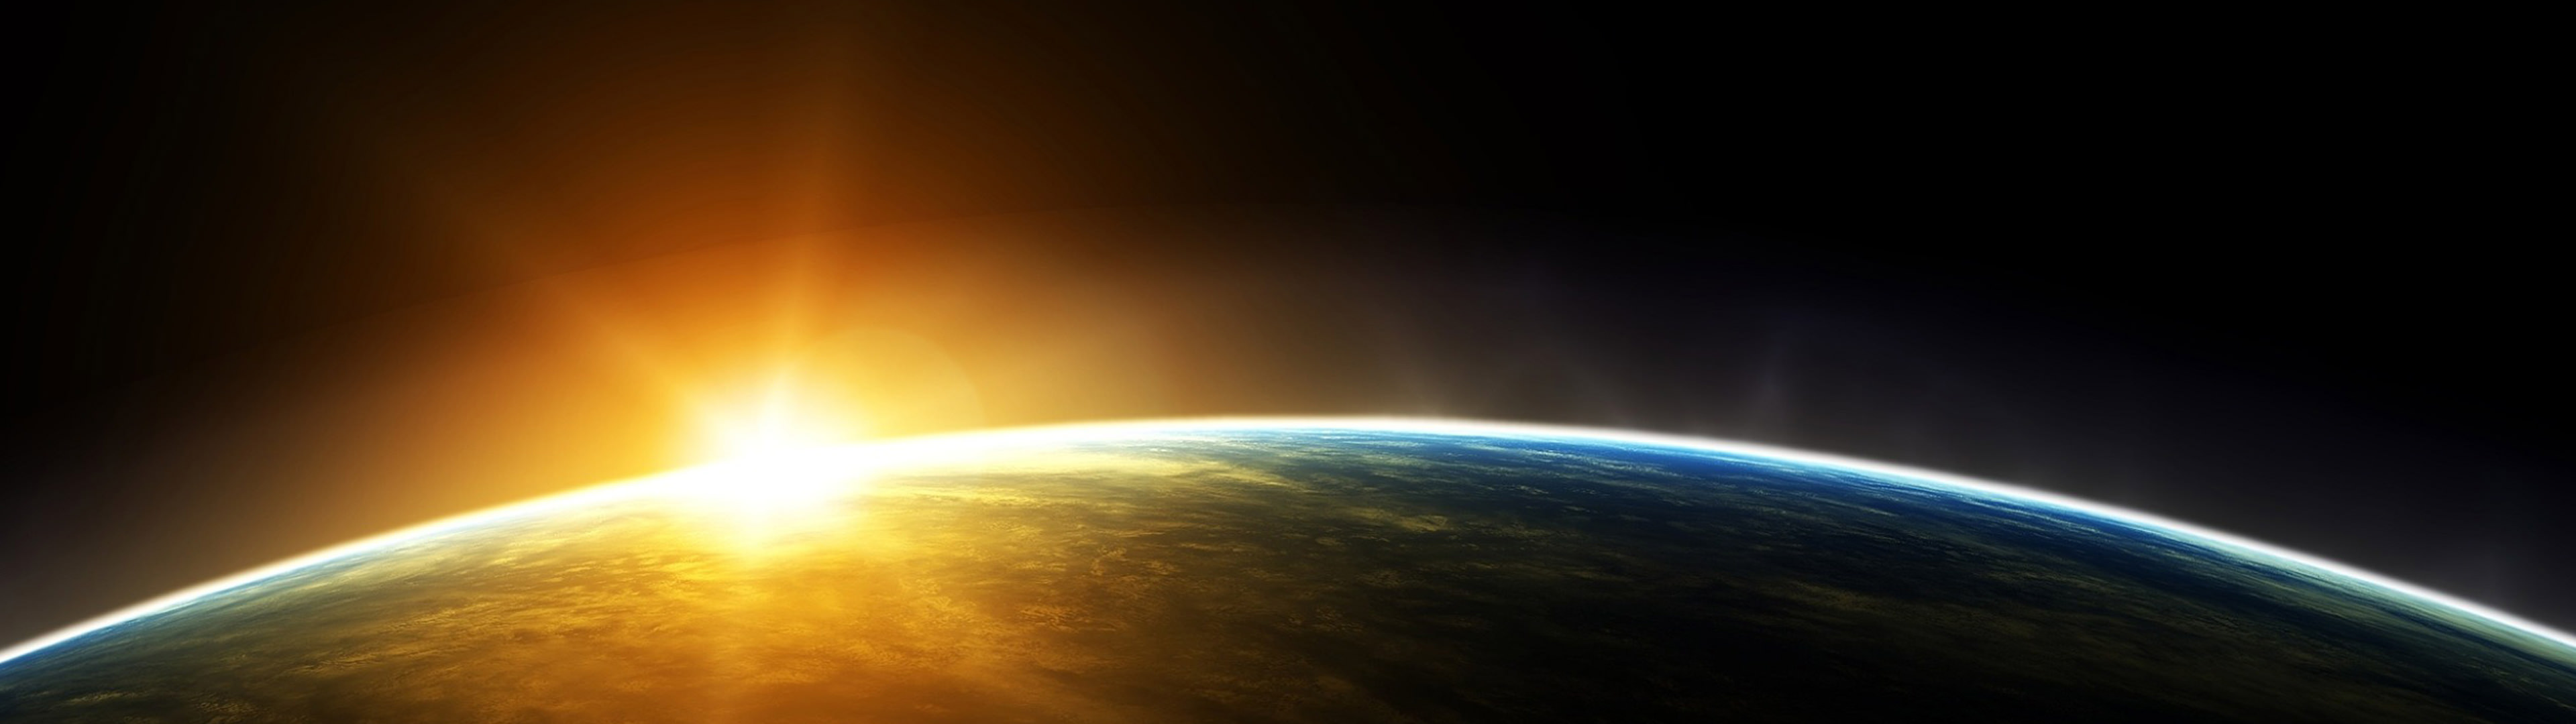 Download Space Sun [ 3840 x 1080 ...